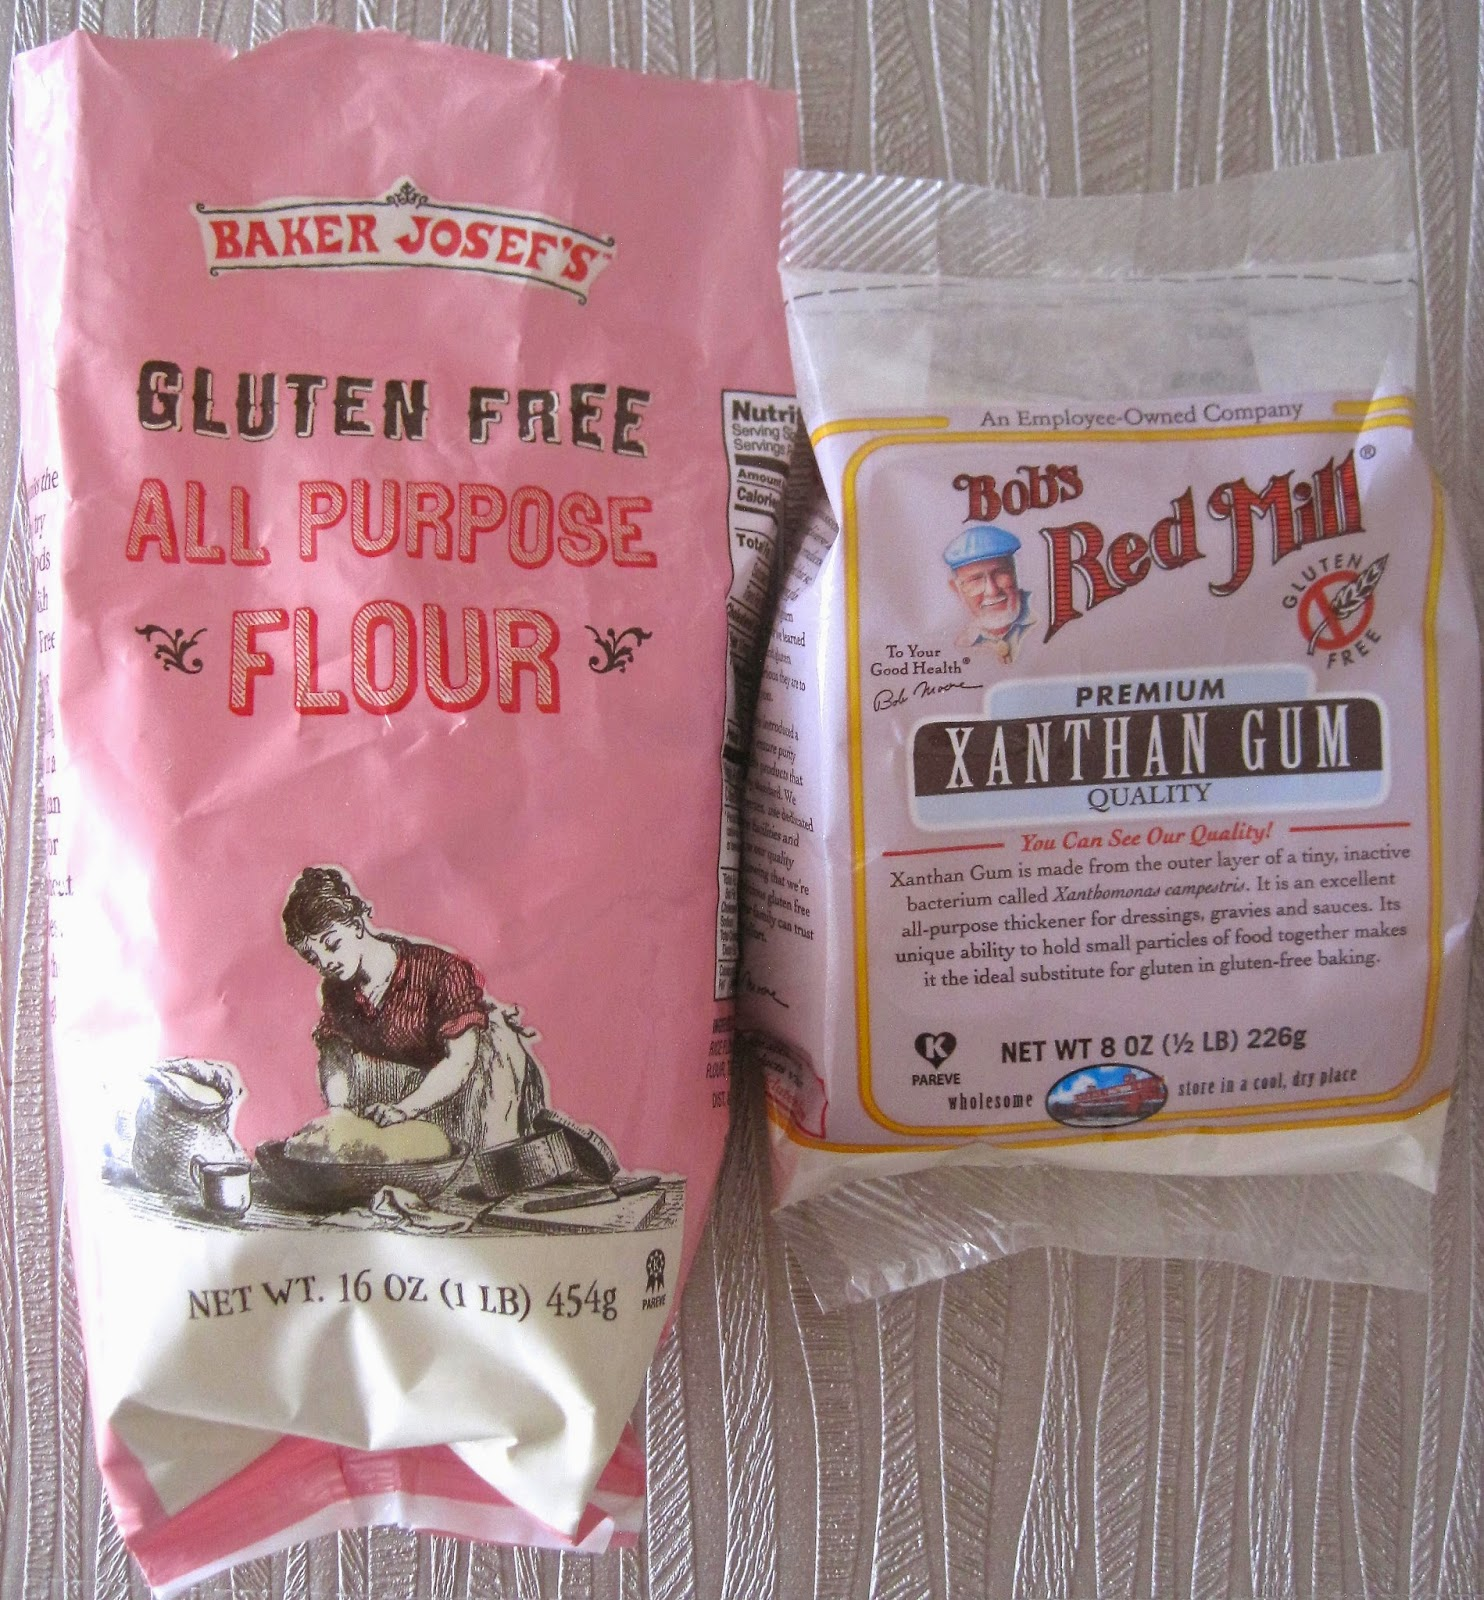 Trader Joe's Gluten-Free All Purpose Flour & Bob's Red Mill Xanthan Gum